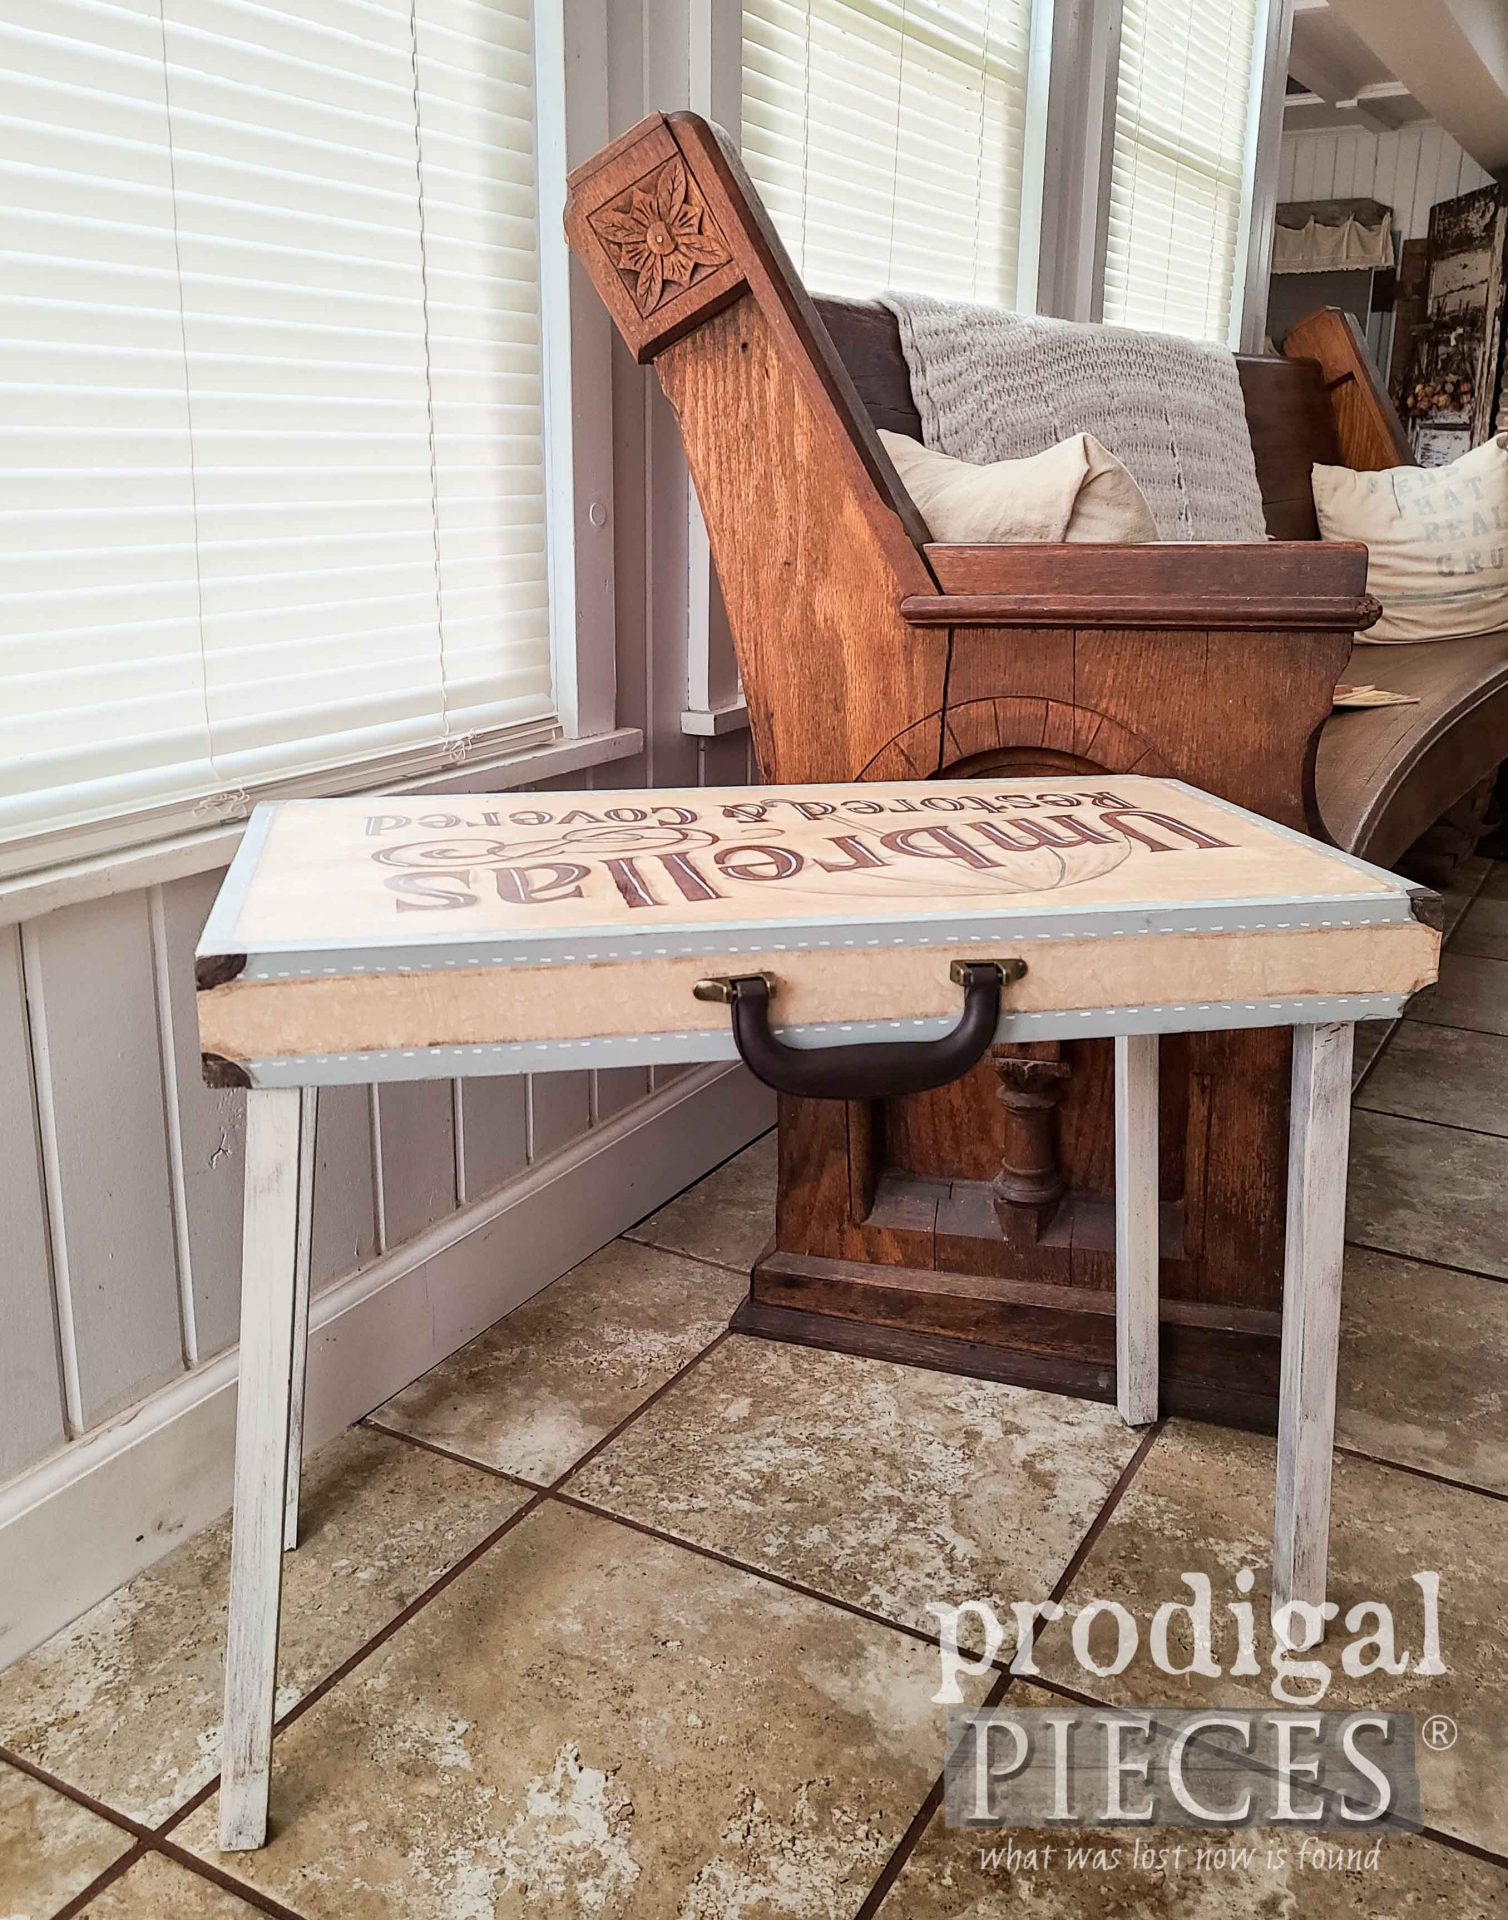 Farmhouse Style Folding Table with Typography by Larissa of Prodigal Pieces | prodigalpieces.com #prodigalpieces #diy #home #furniture #farmhouse #vintage